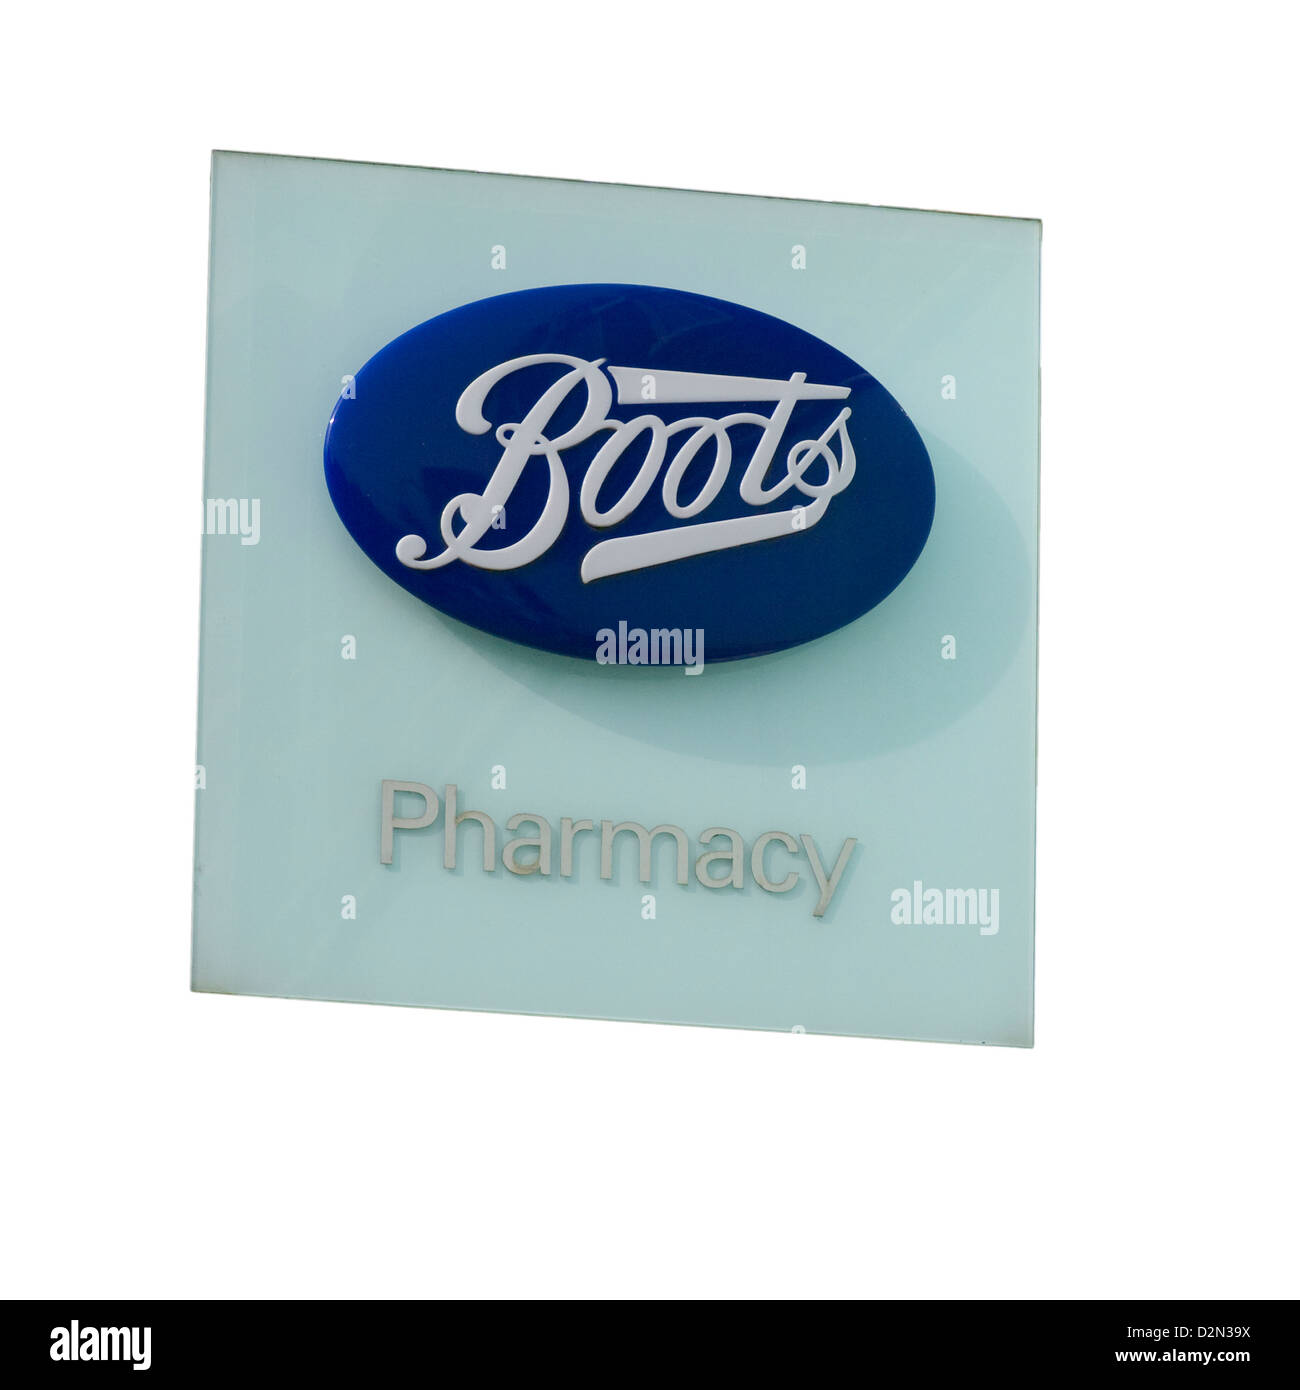 Boots Pharmacy Sign - Stock Image